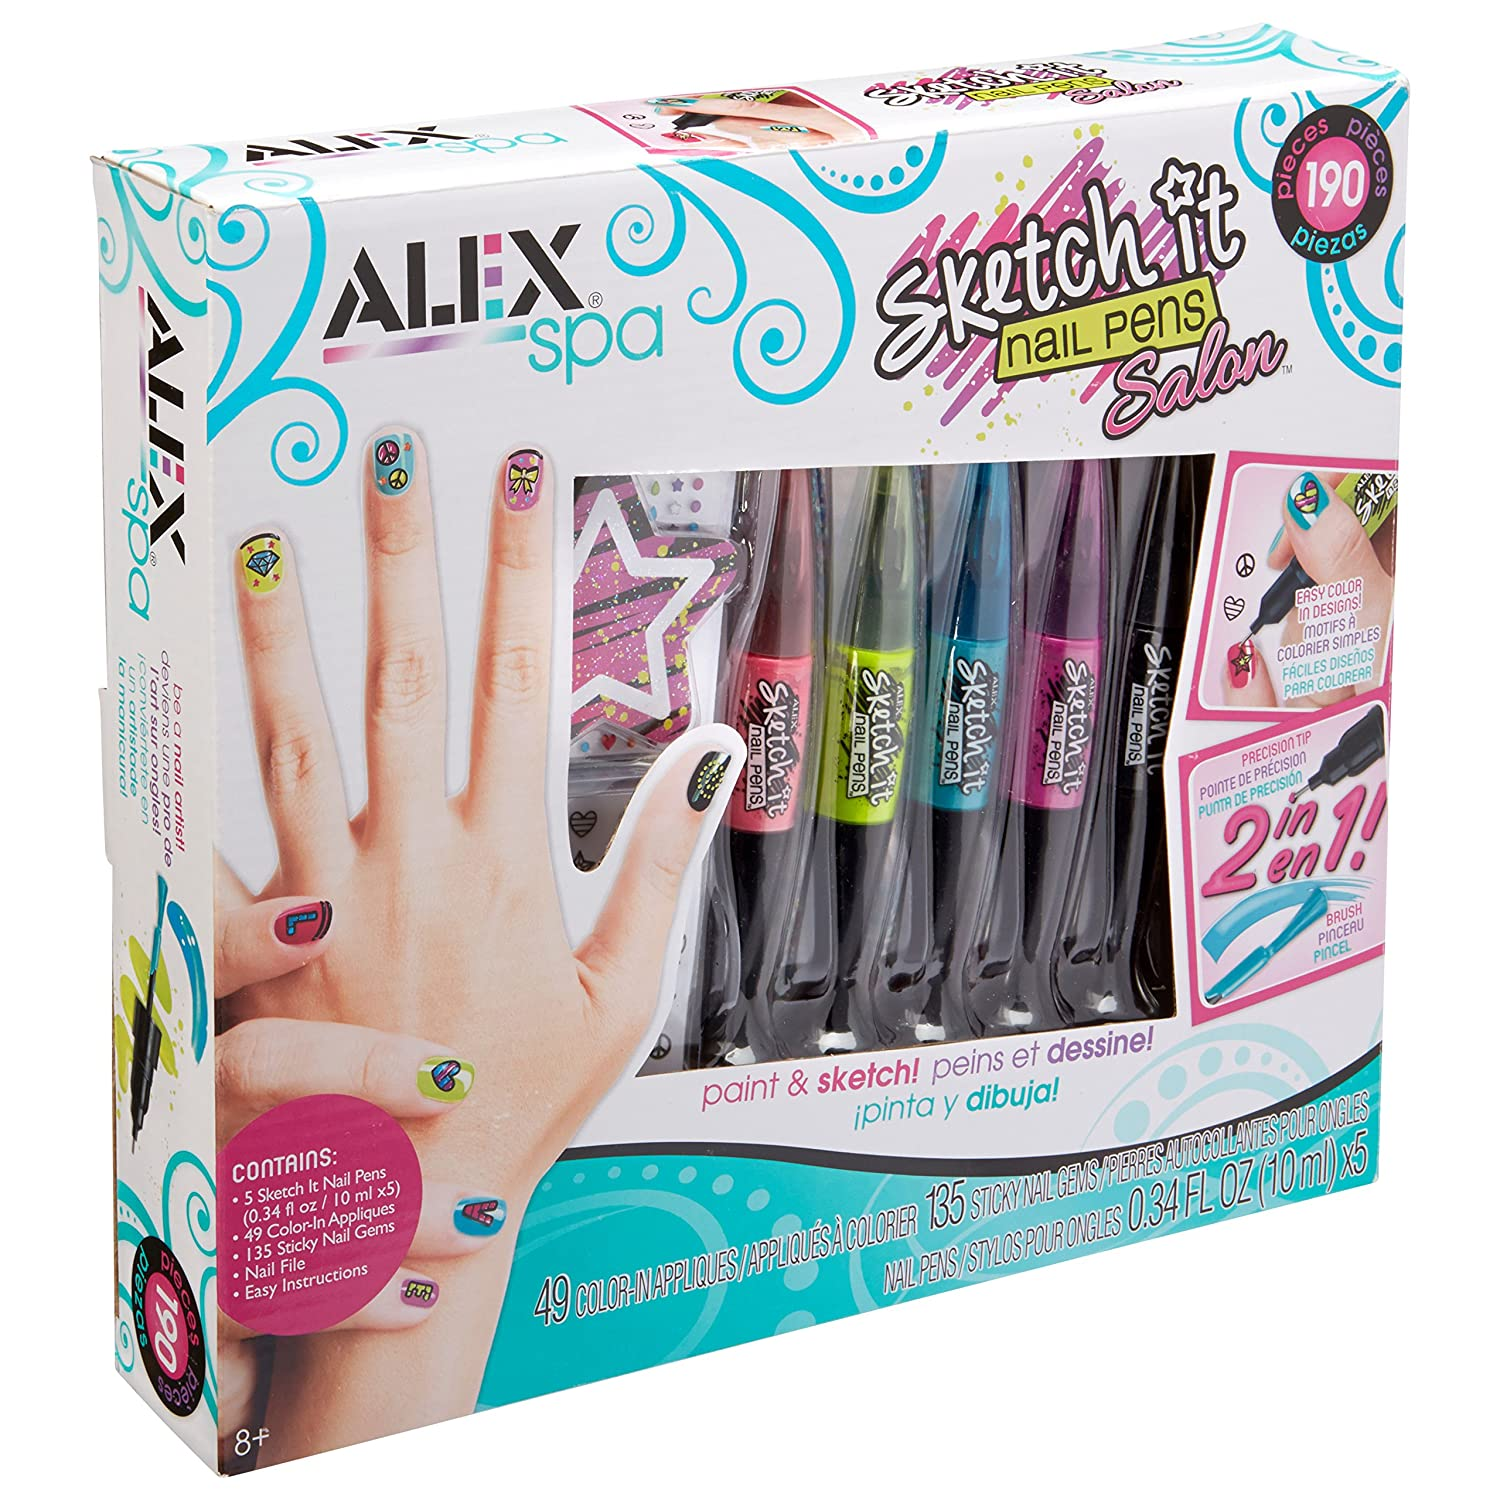 Amazon.com: ALEX Spa Sketch It Nail Pens Salon: Toys & Games